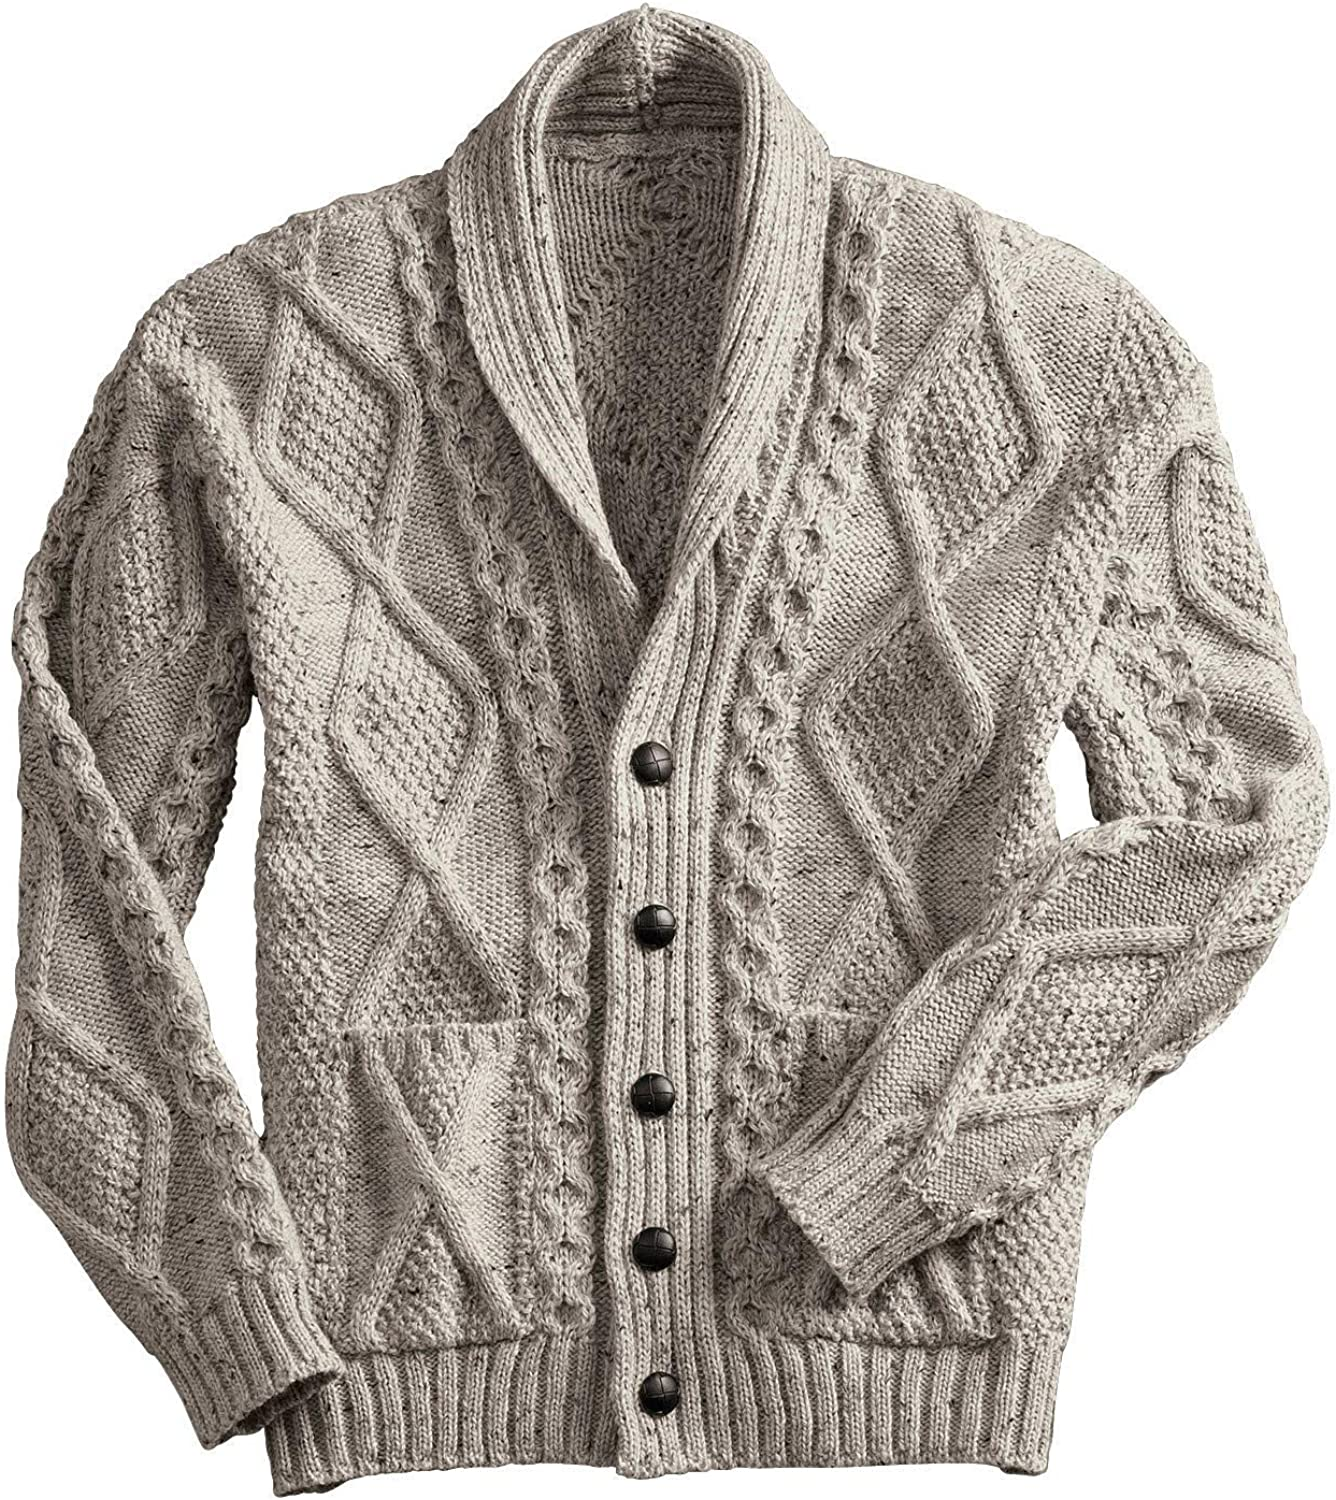 100% Irish Merino Wool Aran Button Cardigan, Oatmeal, Small